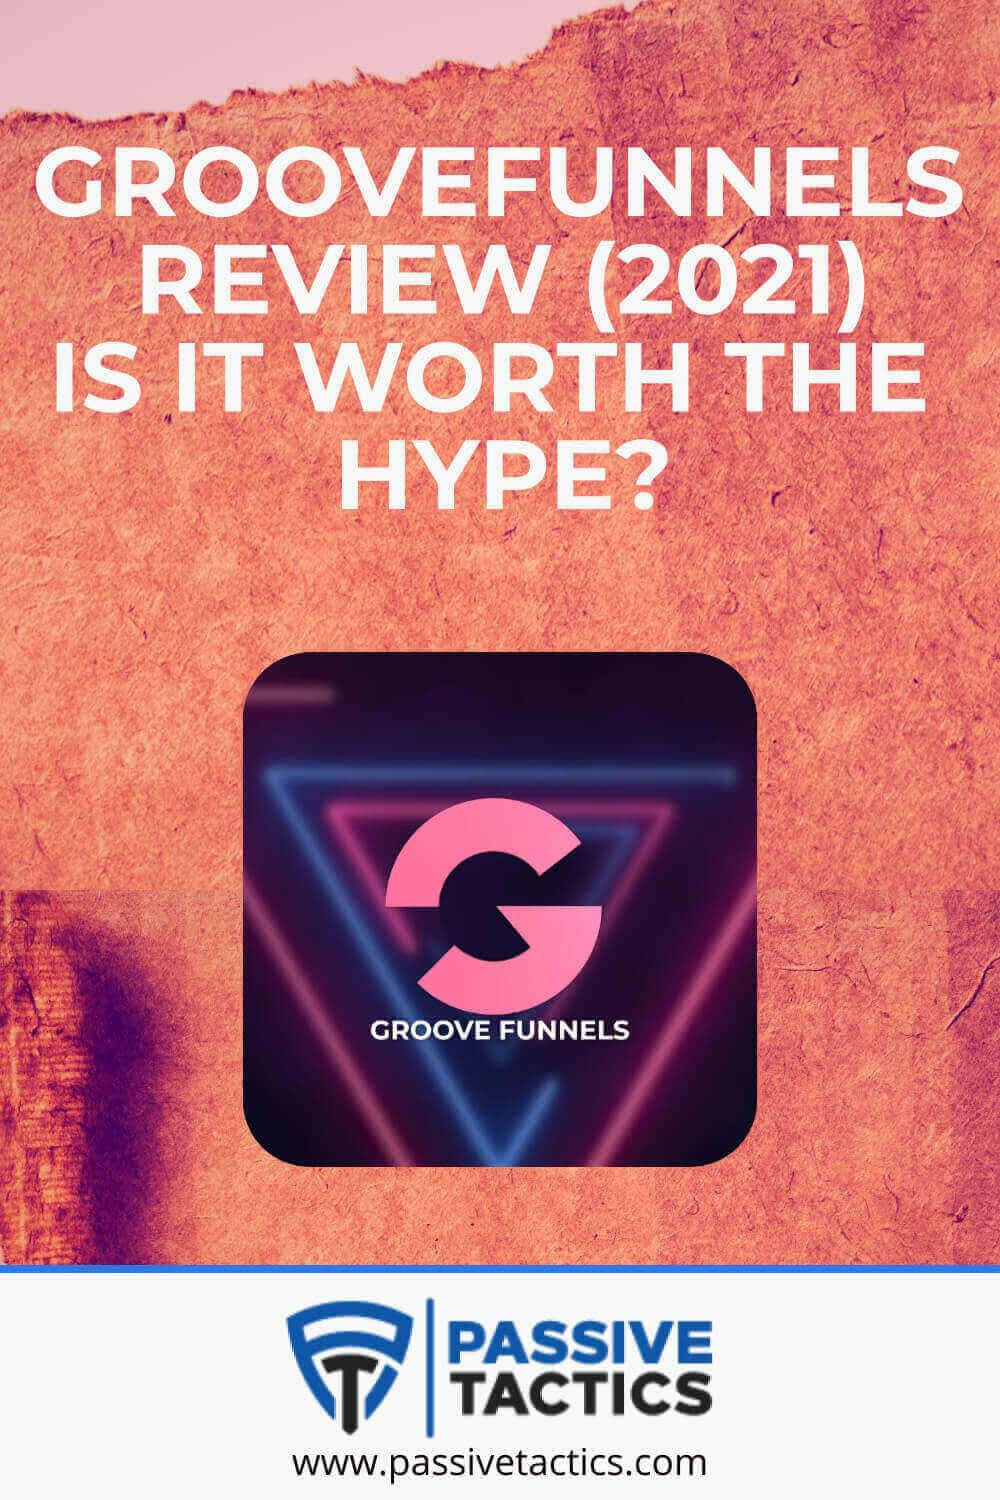 GrooveFunnels Review (2021): Is It Worth The Hype?